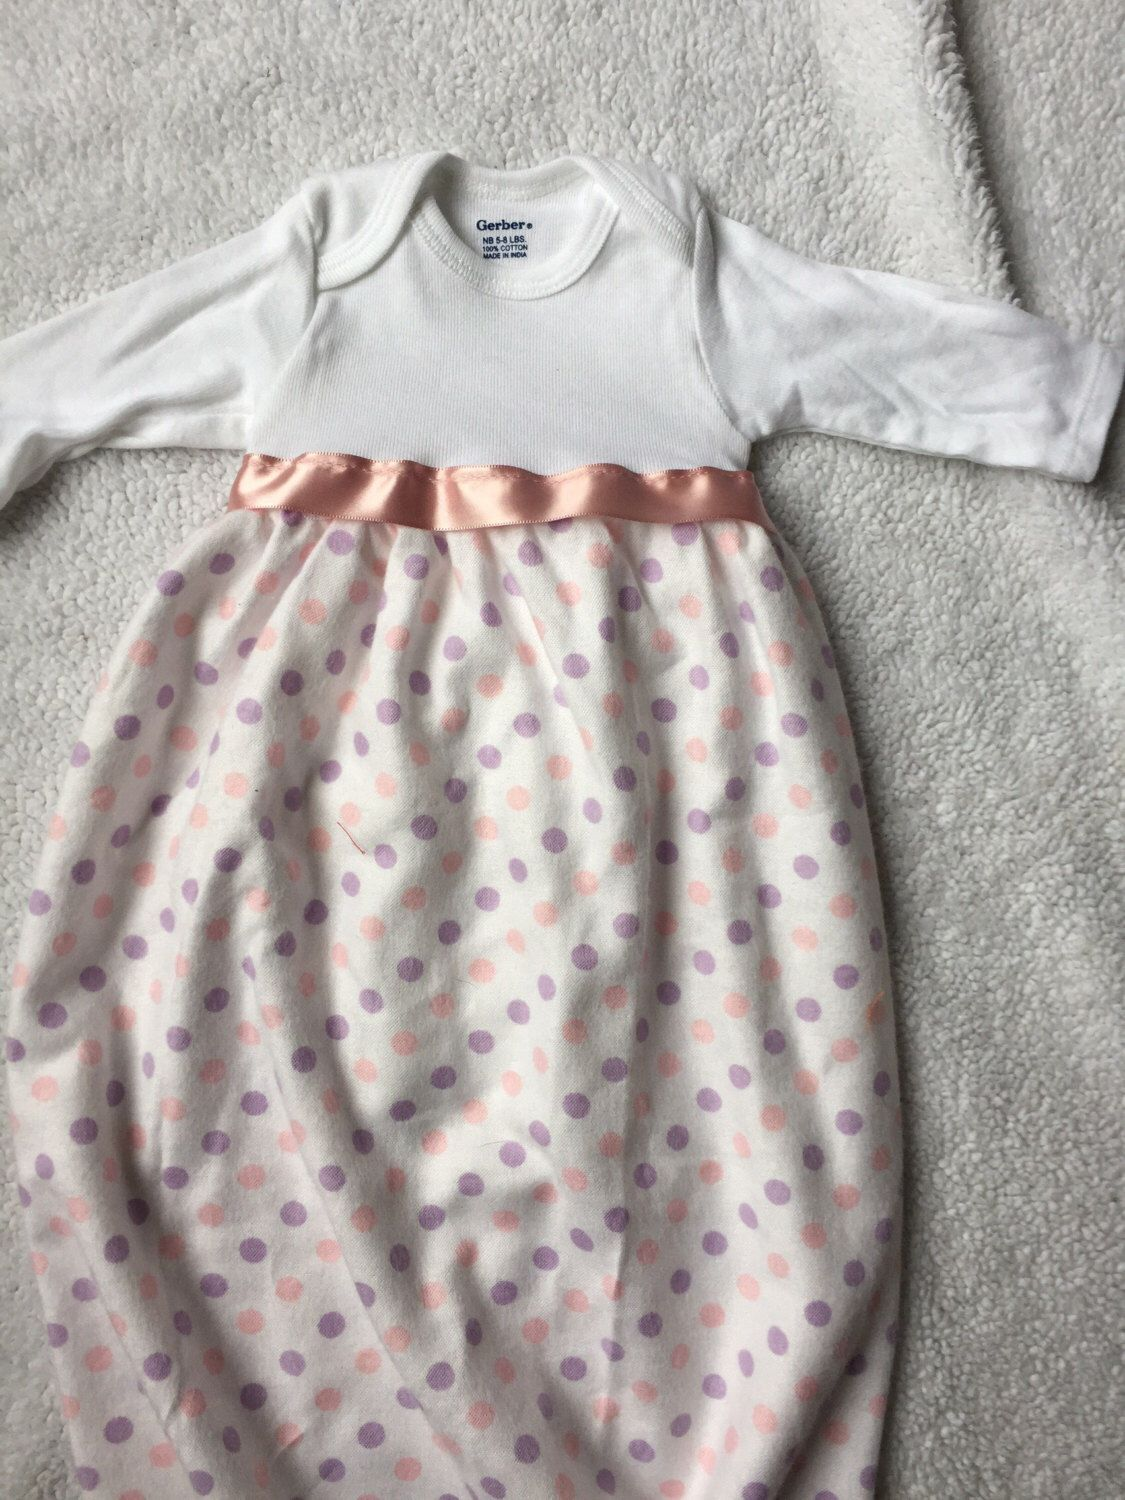 Pink dress baby  Adorable Onesie Sleep Sack Pink and purple polkadots Infant Gown